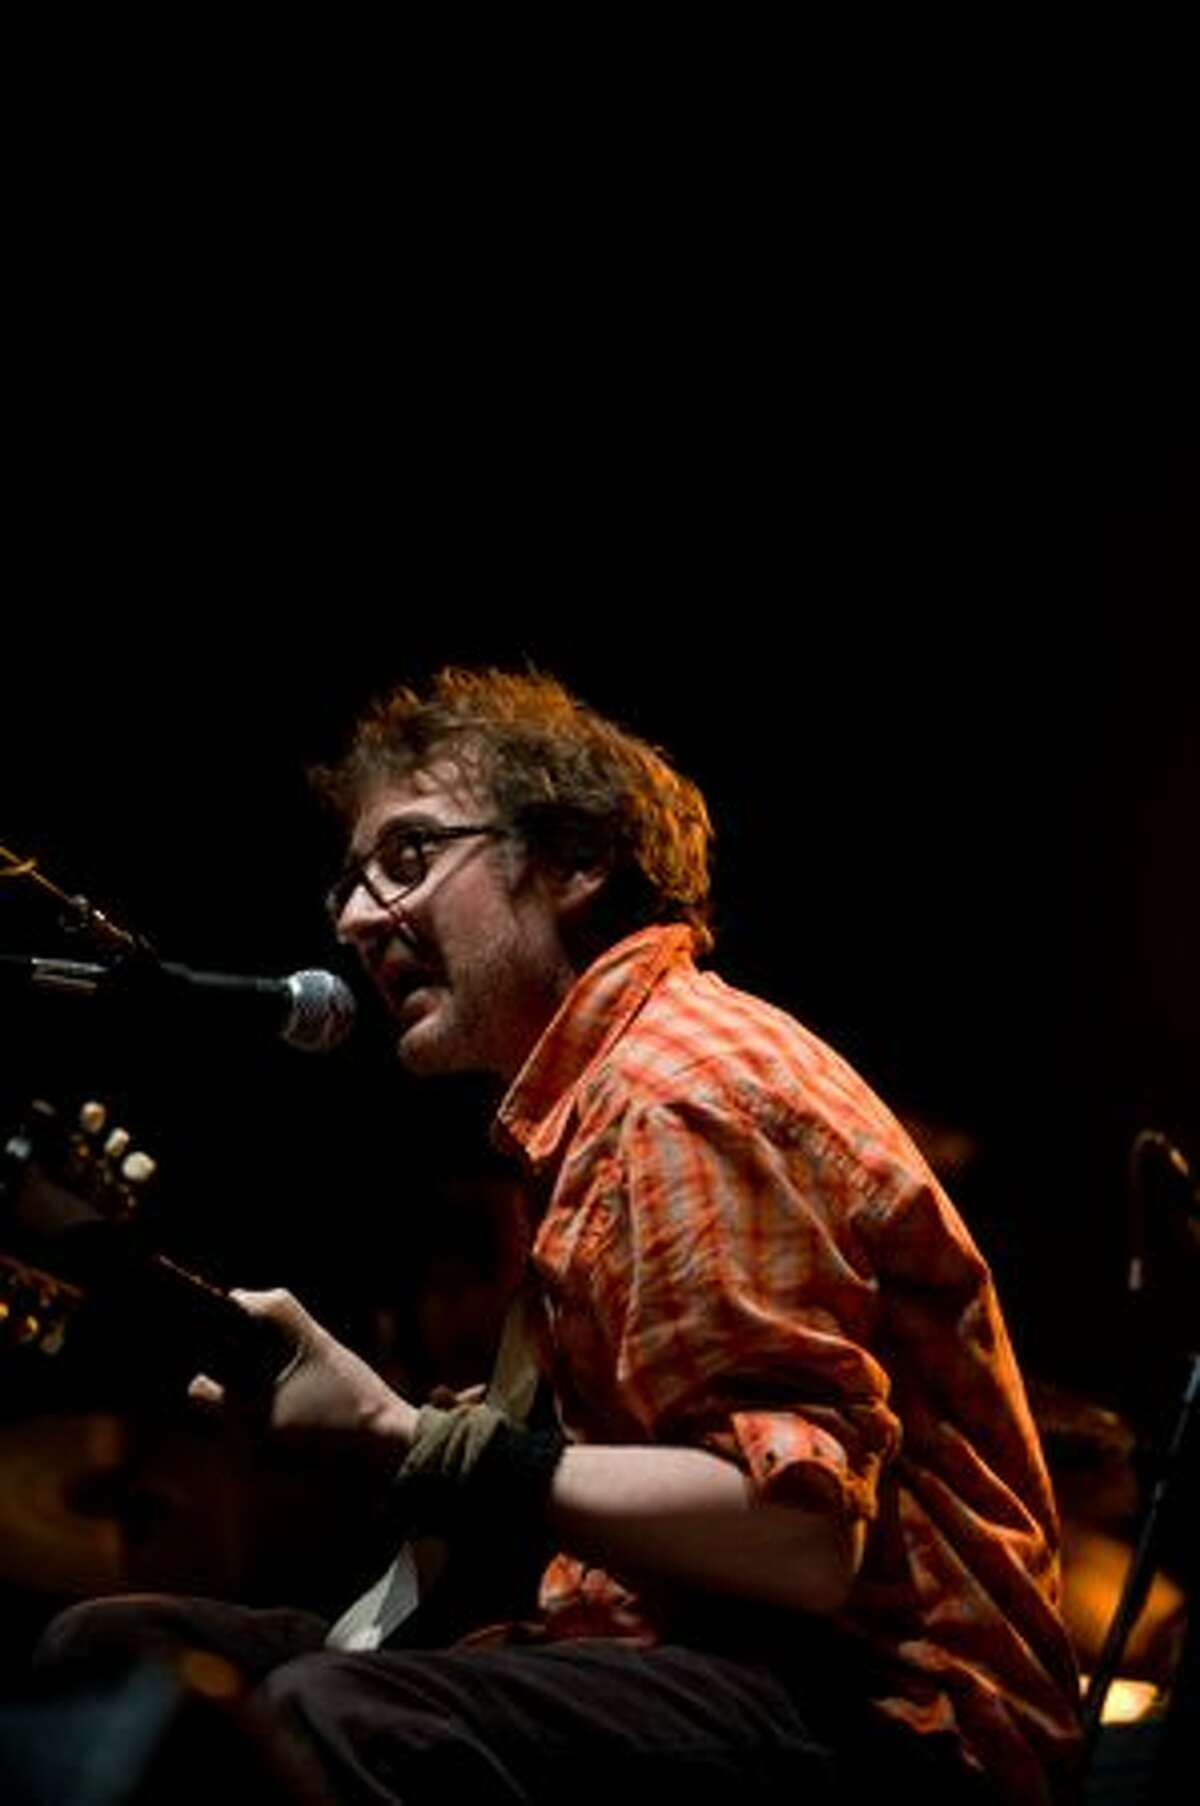 Califone performs on stage at the Paramount Theatre opening for Wilco on Feb. 6, 2010. (Chona Kasinger/seattlepi.com)